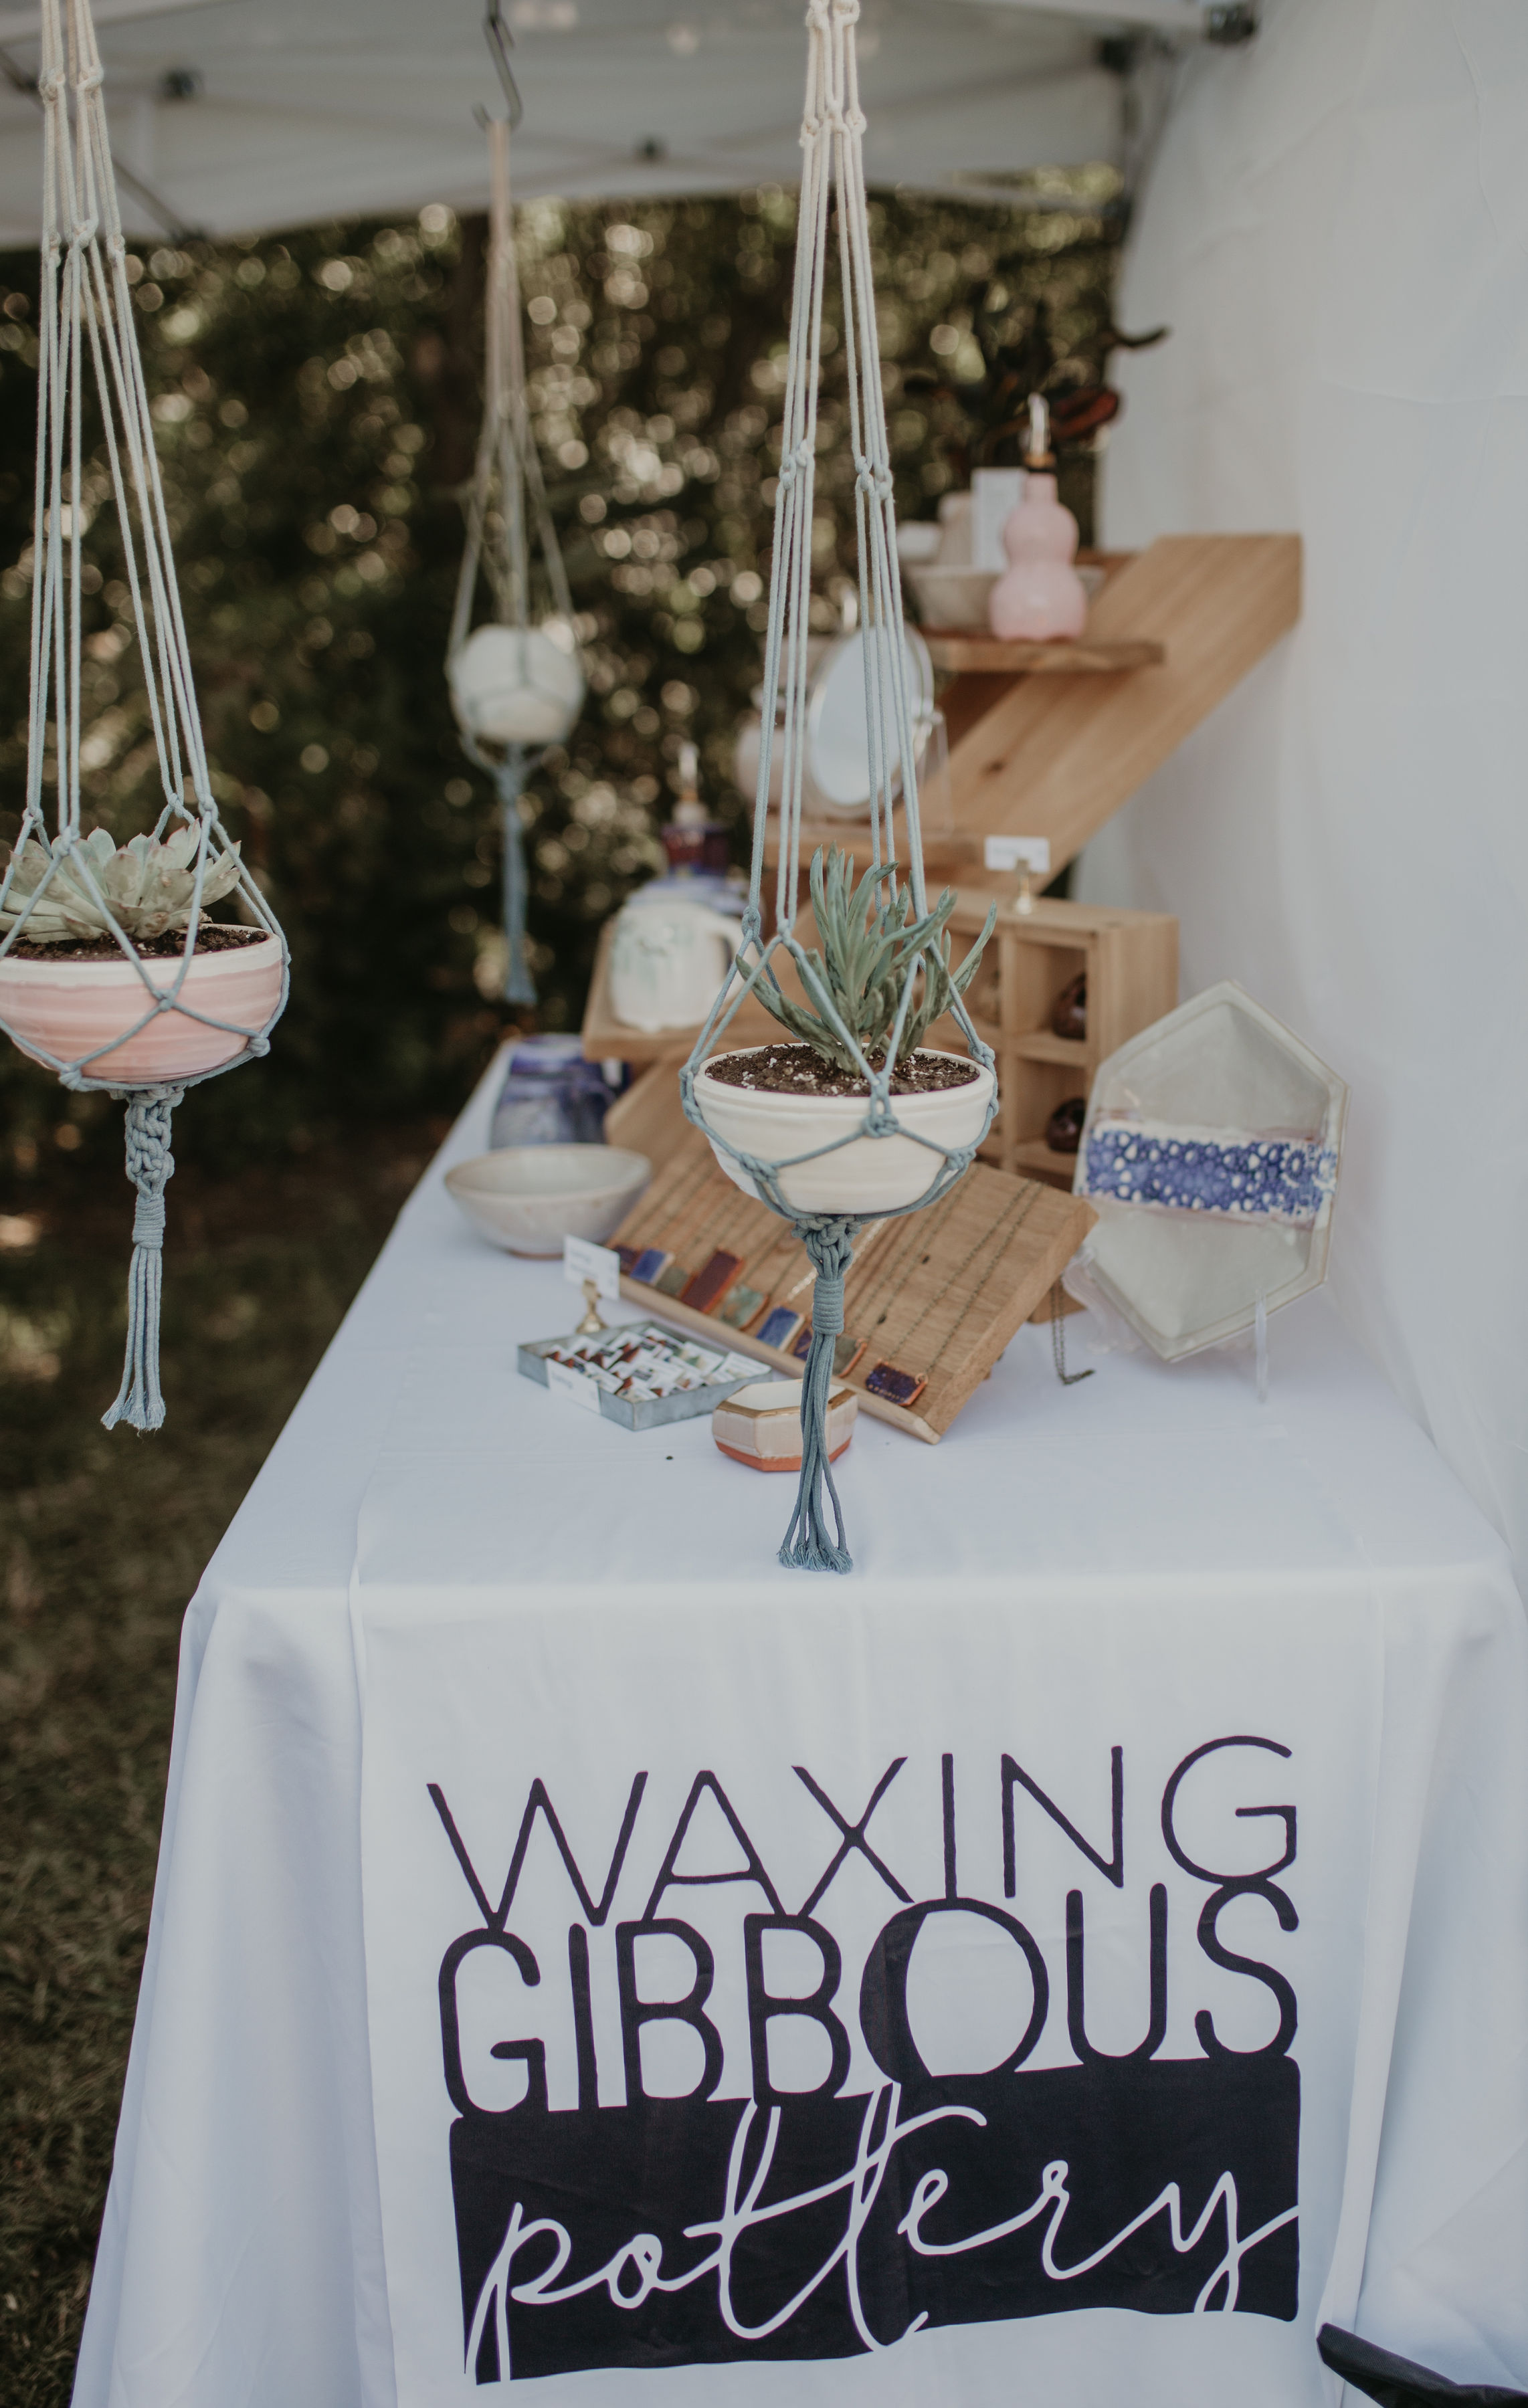 Fall events - Check out Waxing Gibbous Pottery in person at these events around Durham, NC